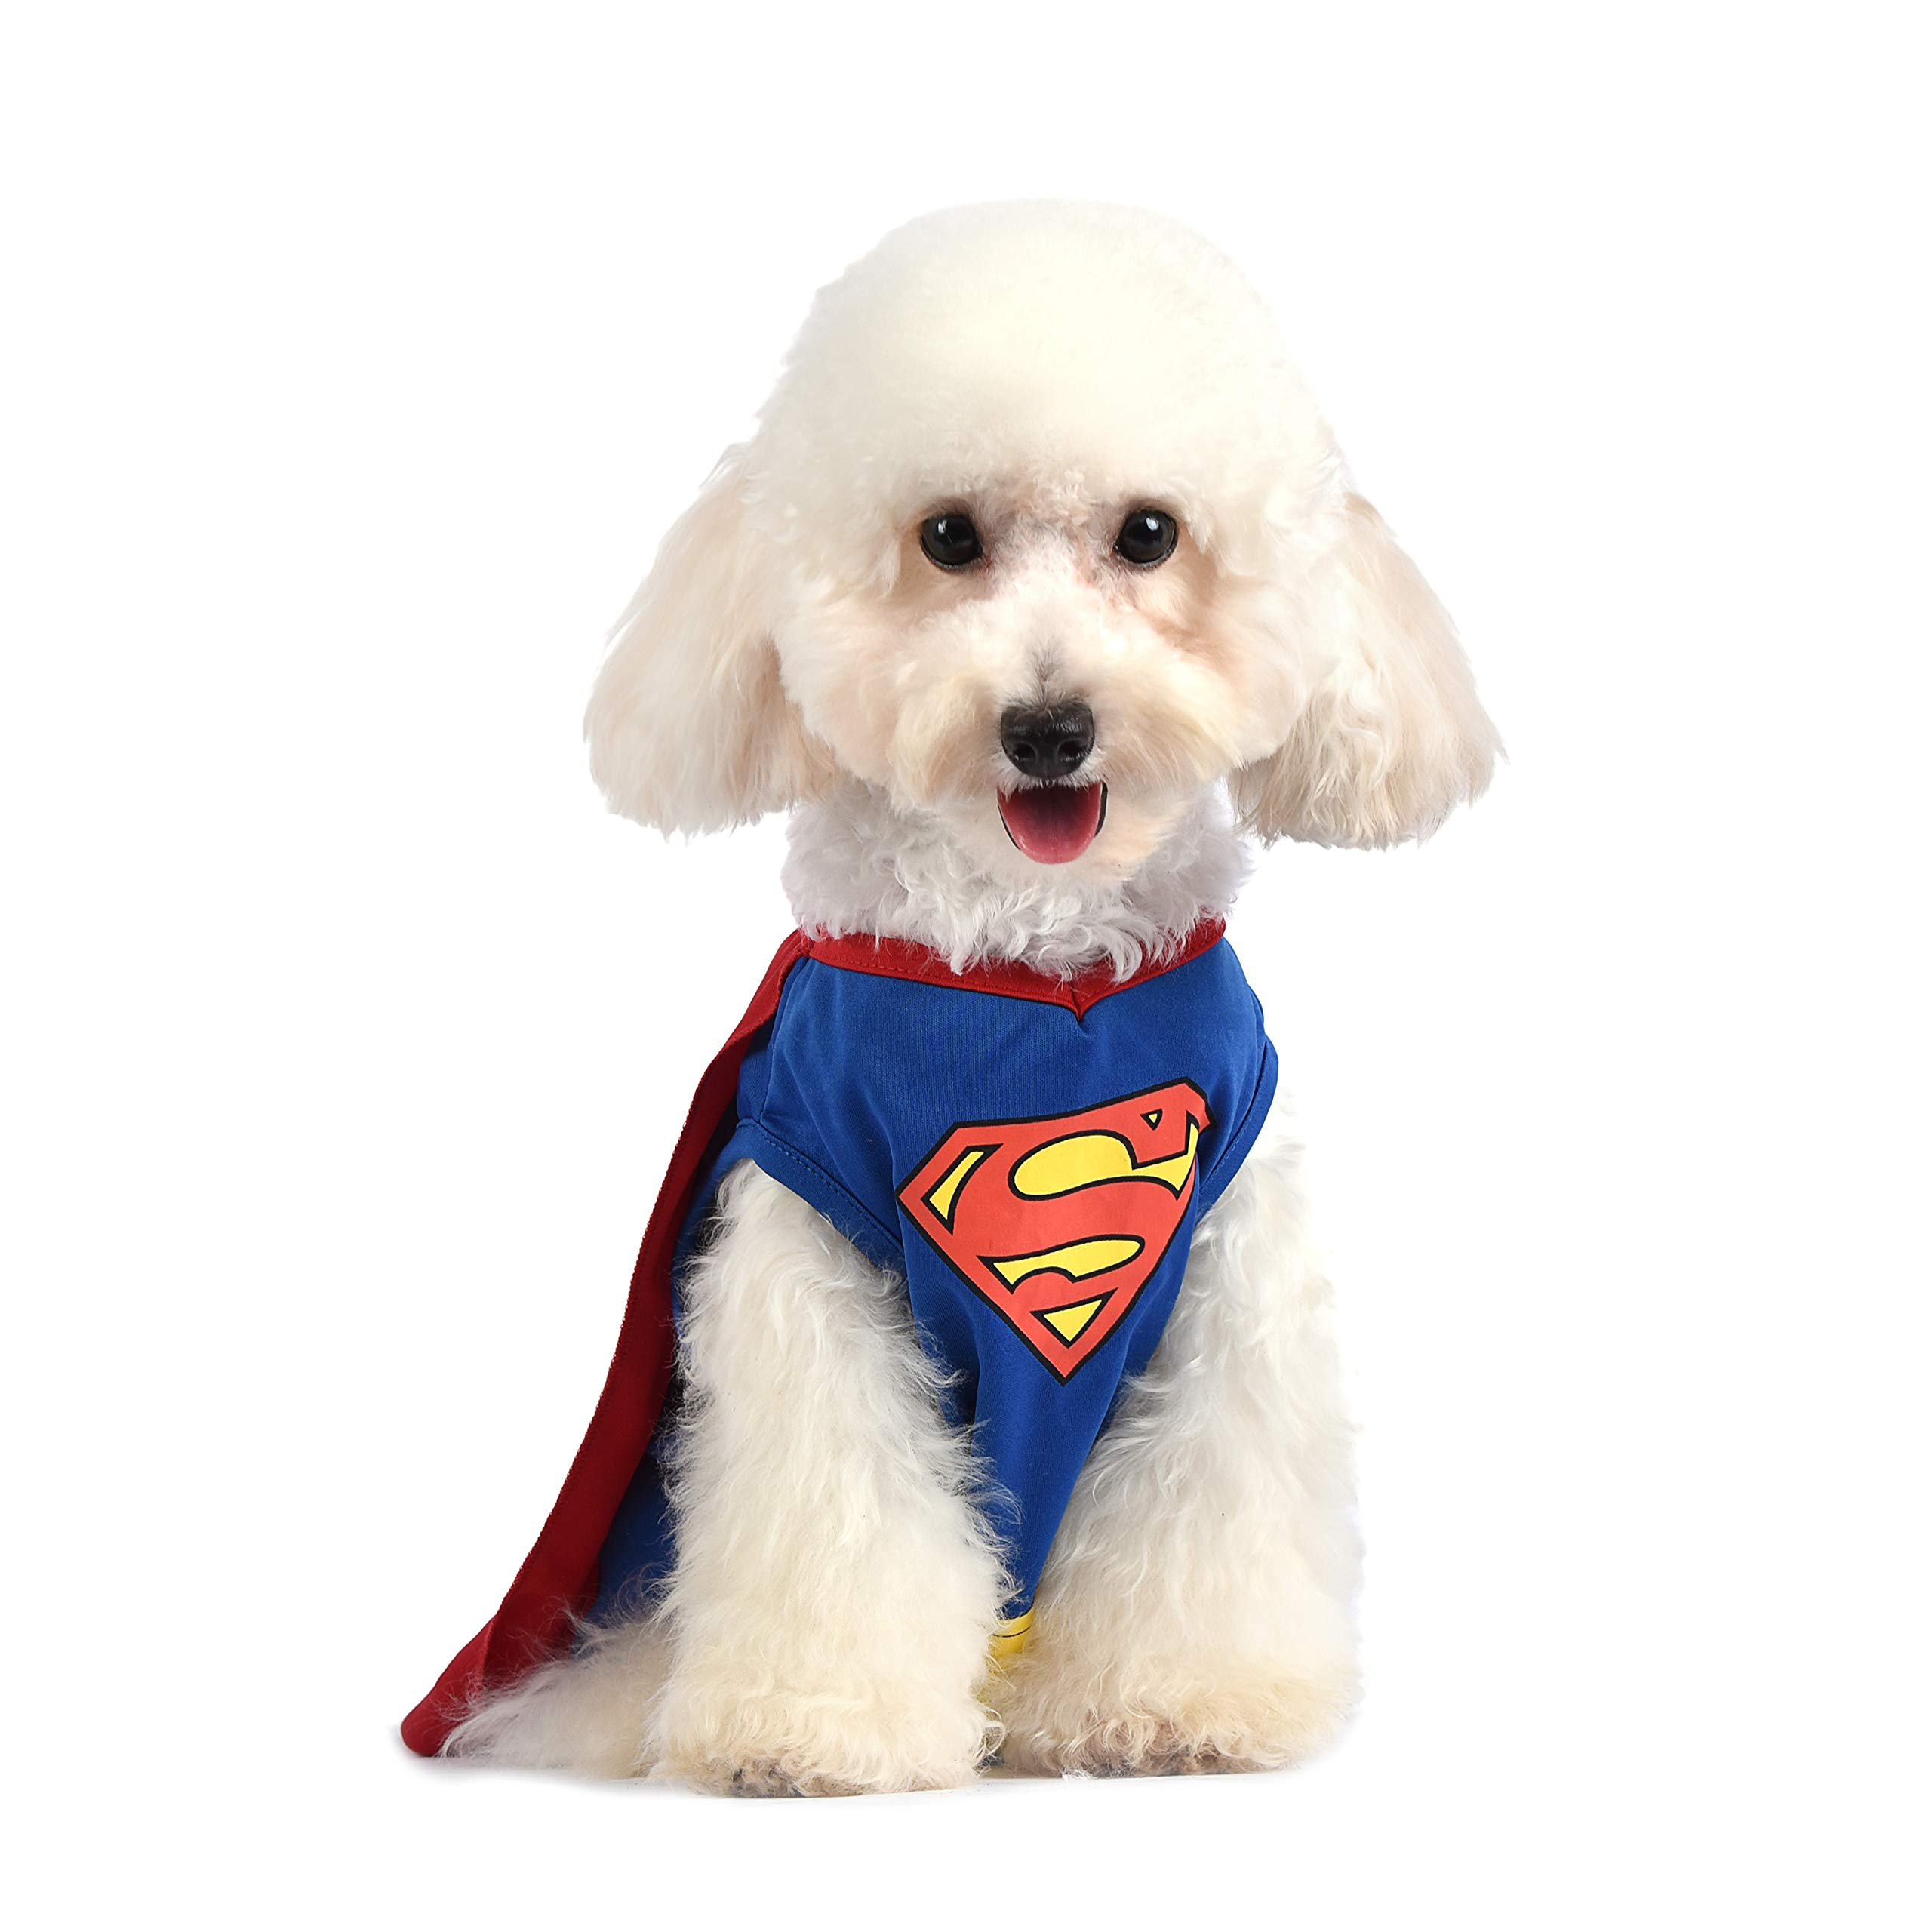 DC Comics Superman Dog Costume | Superhero Costume for Dogs |  Red, Blue, and Yellow Superman Dog Halloween Costume With Cape, Available in Multiple Sizes